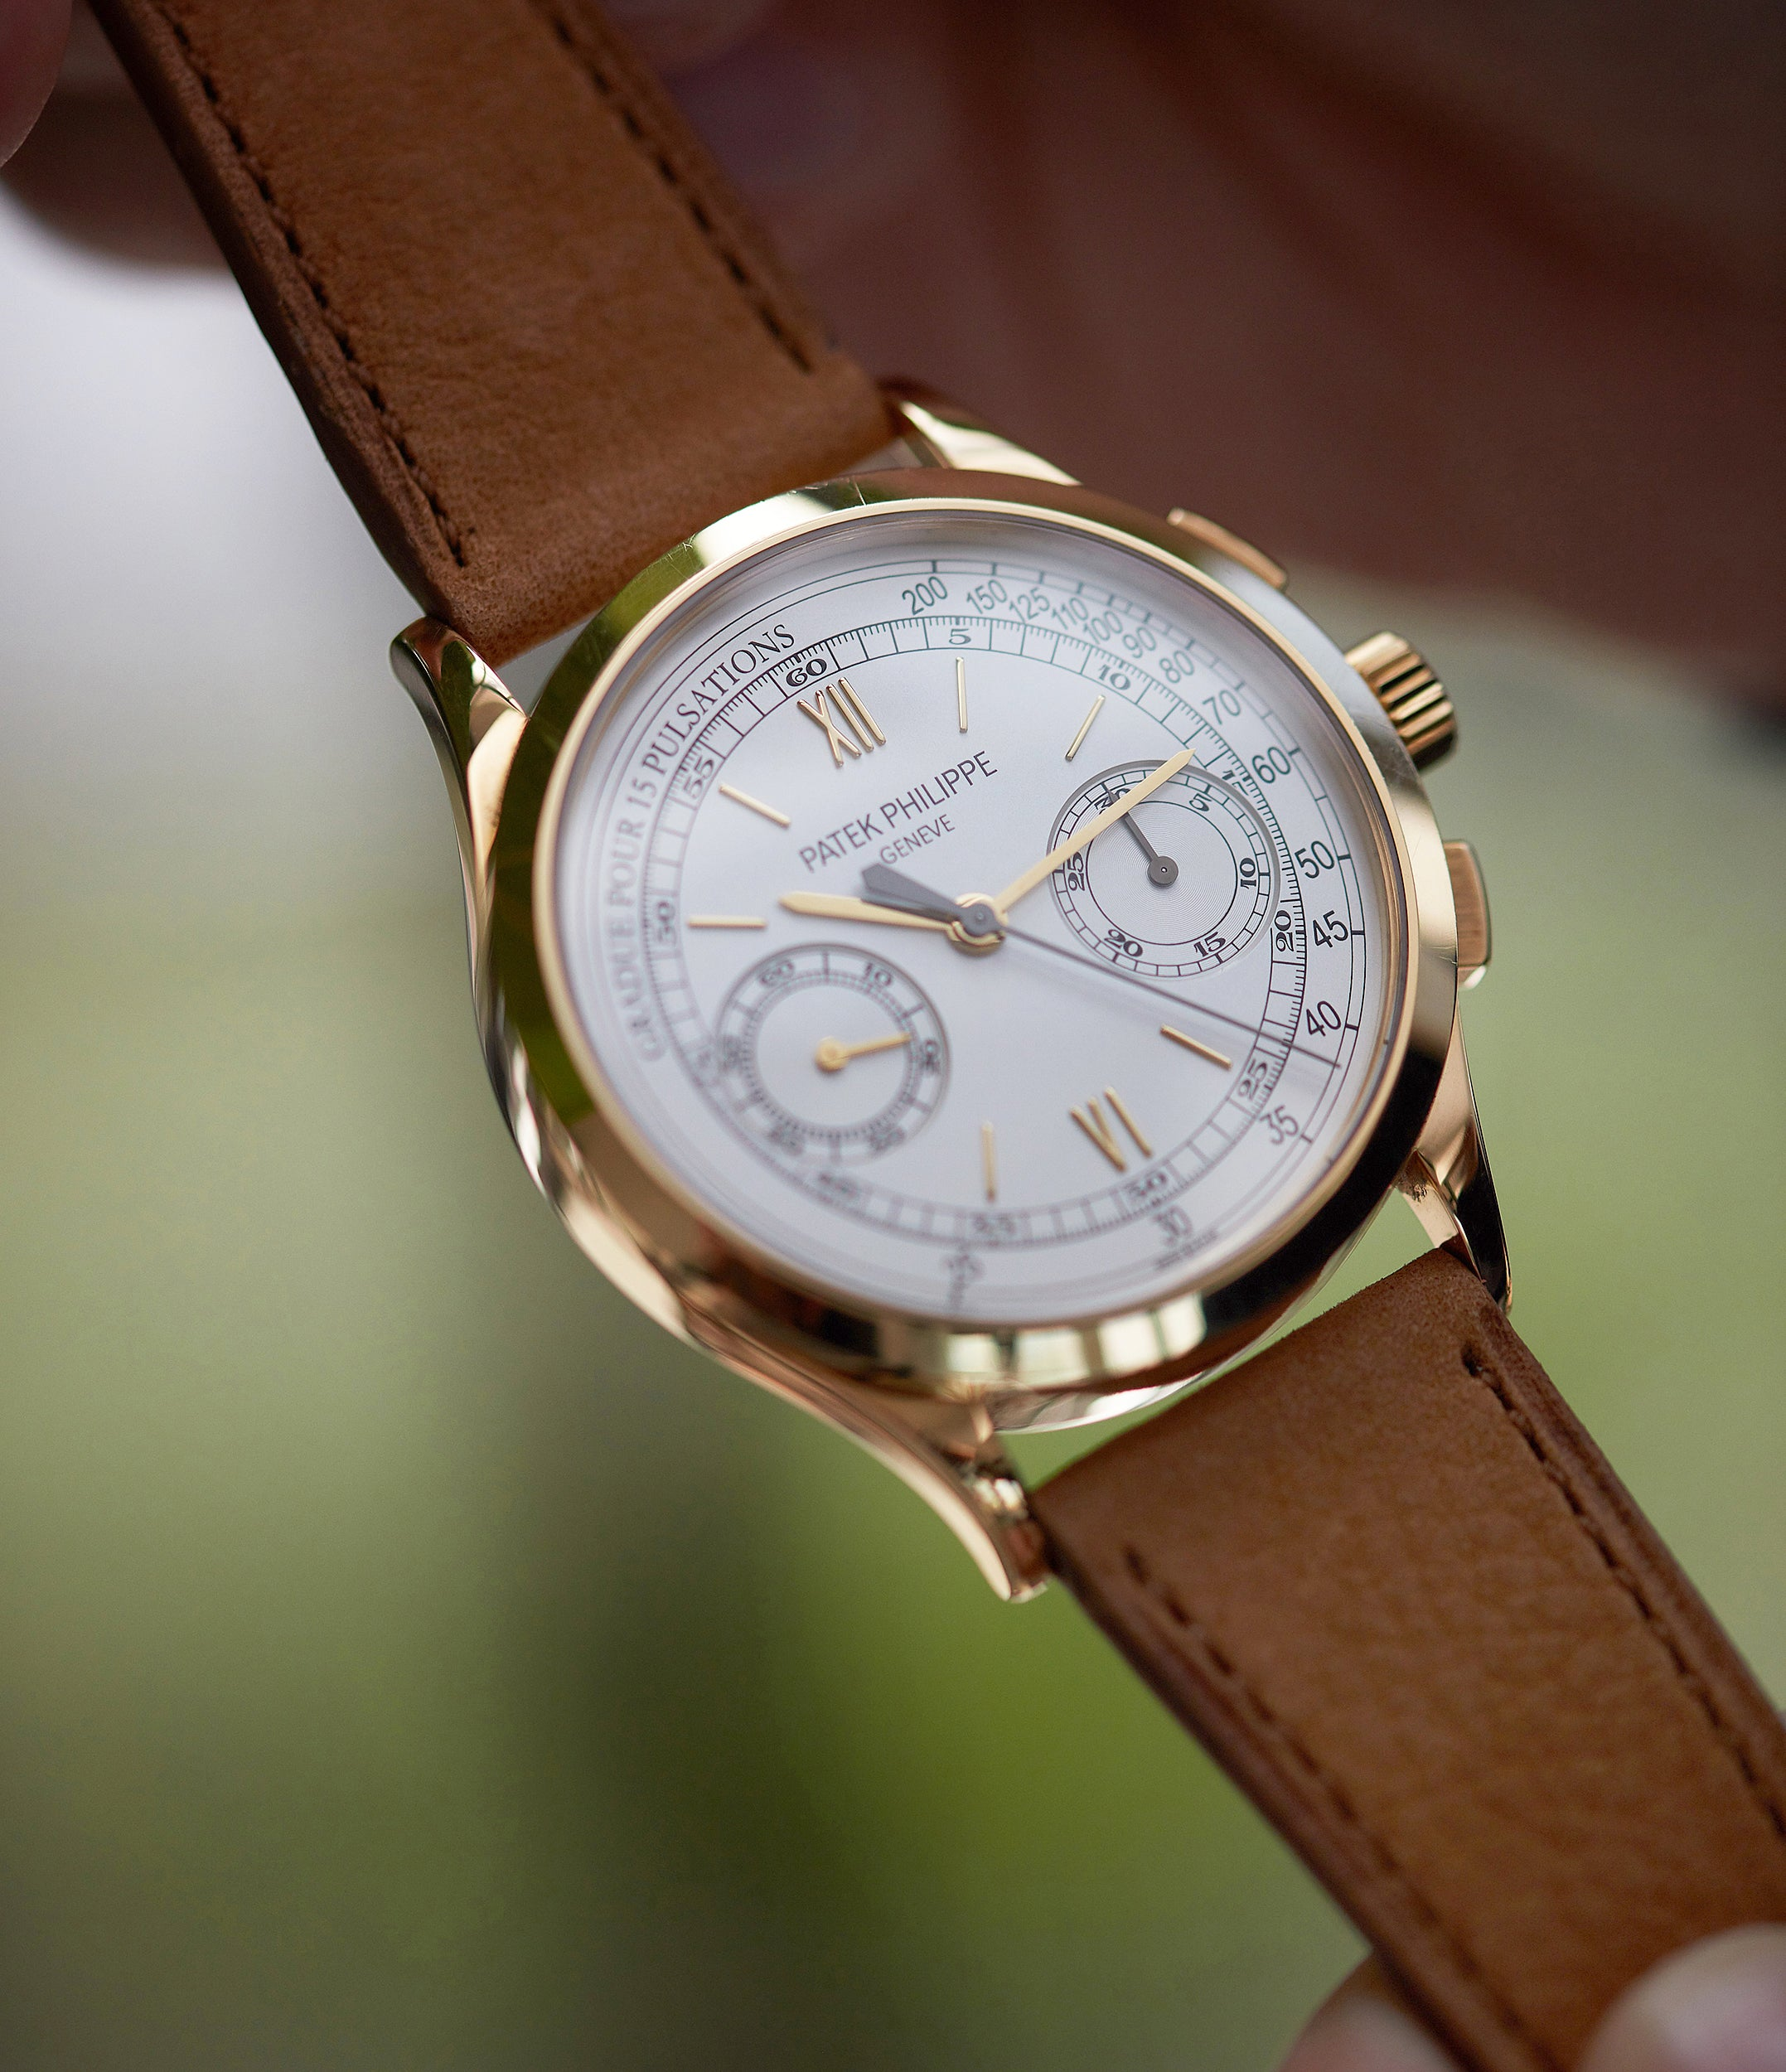 Patek Philippe 5170J-001 Chronograph yellow gold dress pre-owned watch for sale online at A Collected Man London UK specialist of rare watches